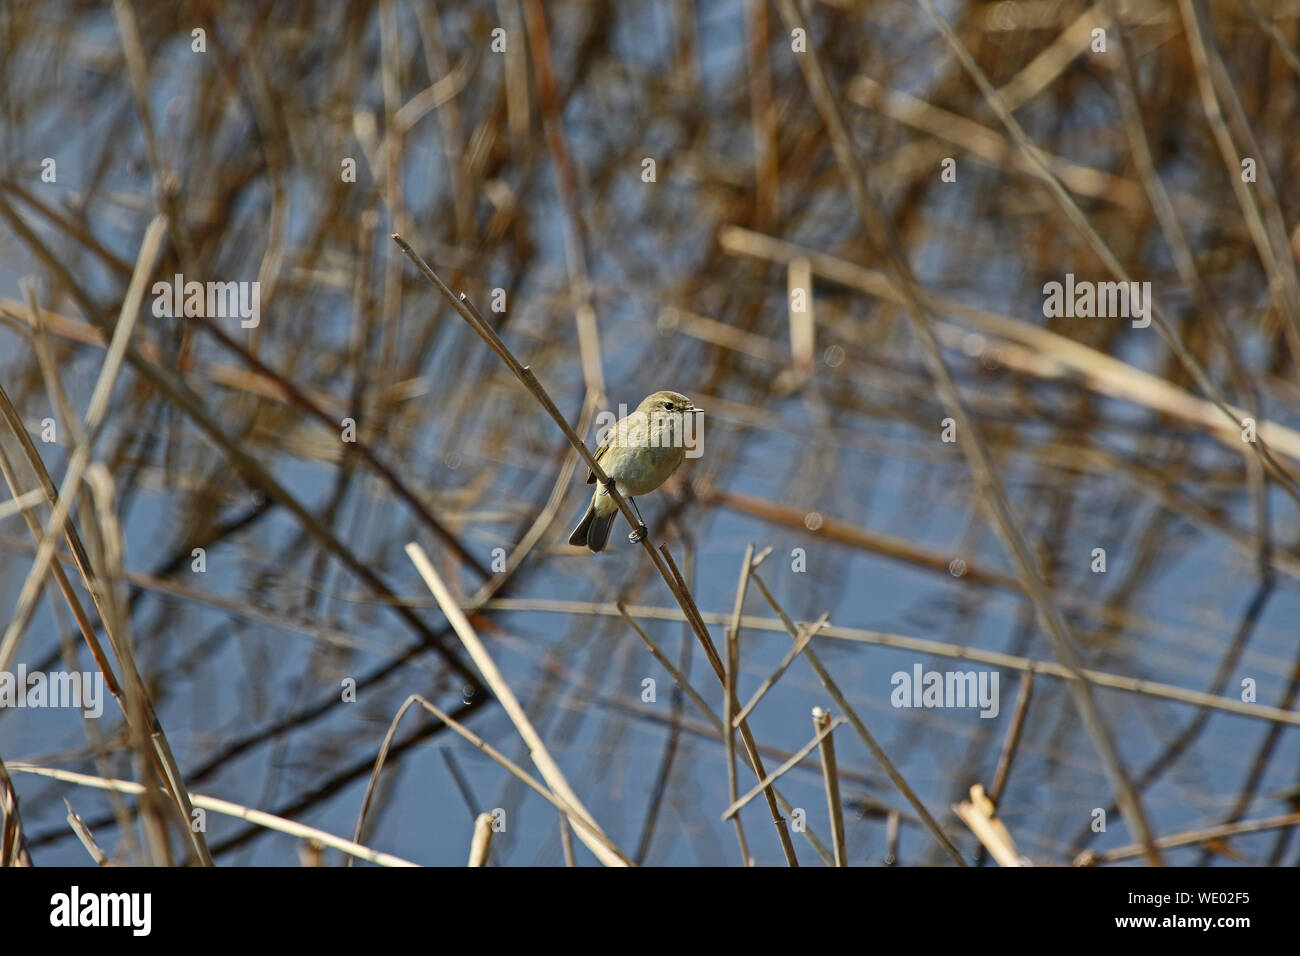 small chiffchaff Latin phylloscopus collybita a type of leaf warbler sitting on a reed in a nature reserve in Italy Stock Photo